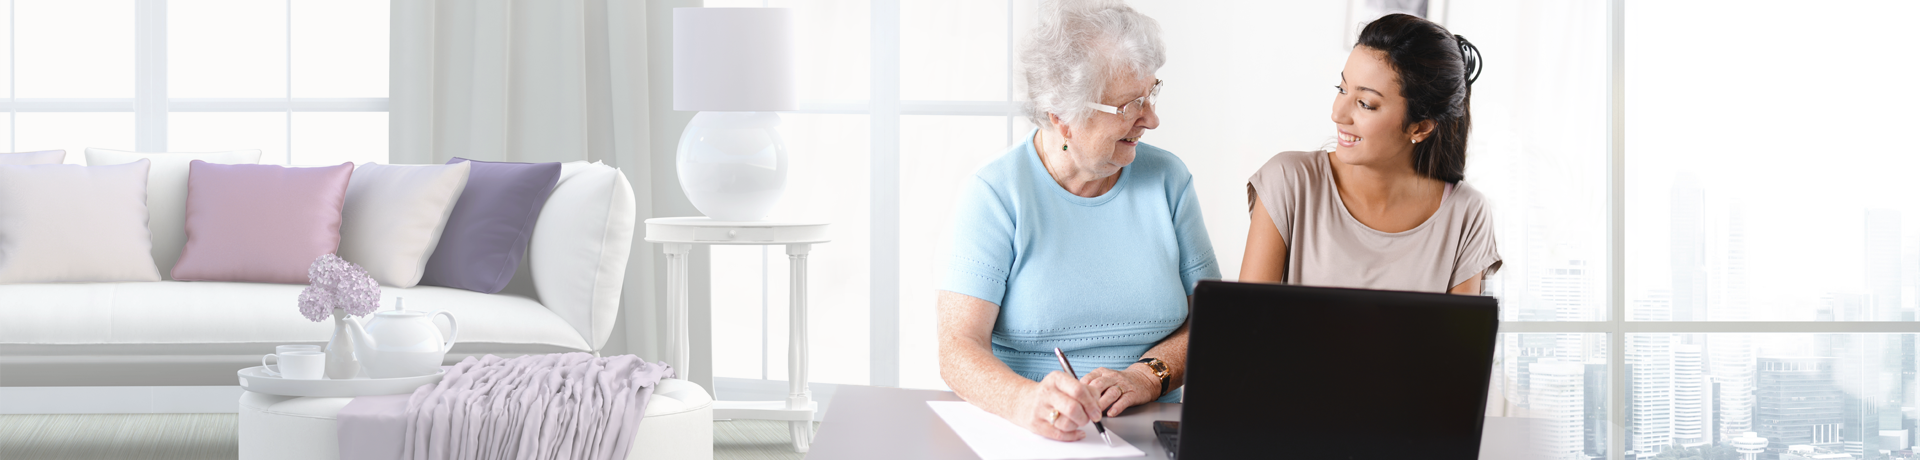 A young home health aide helps an older lady fill out paperwork